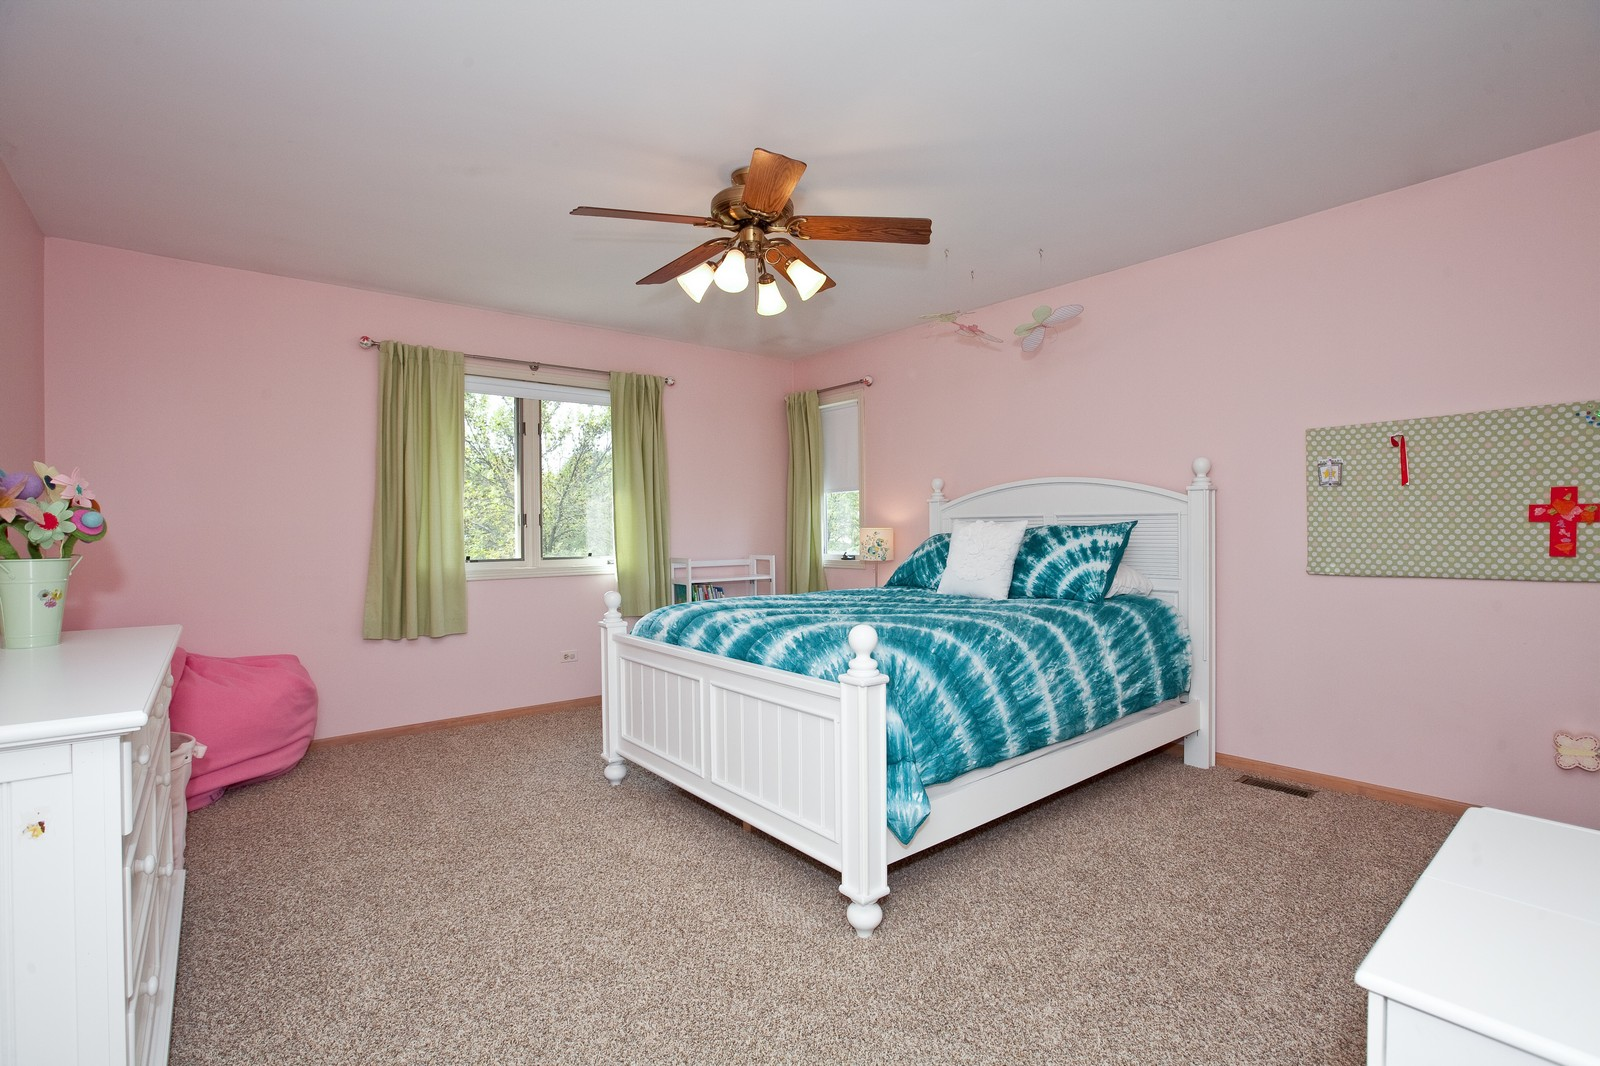 Real Estate Photography - 1031 W. 119th St, Lemont, IL, 60439 - 3rd Bedroom